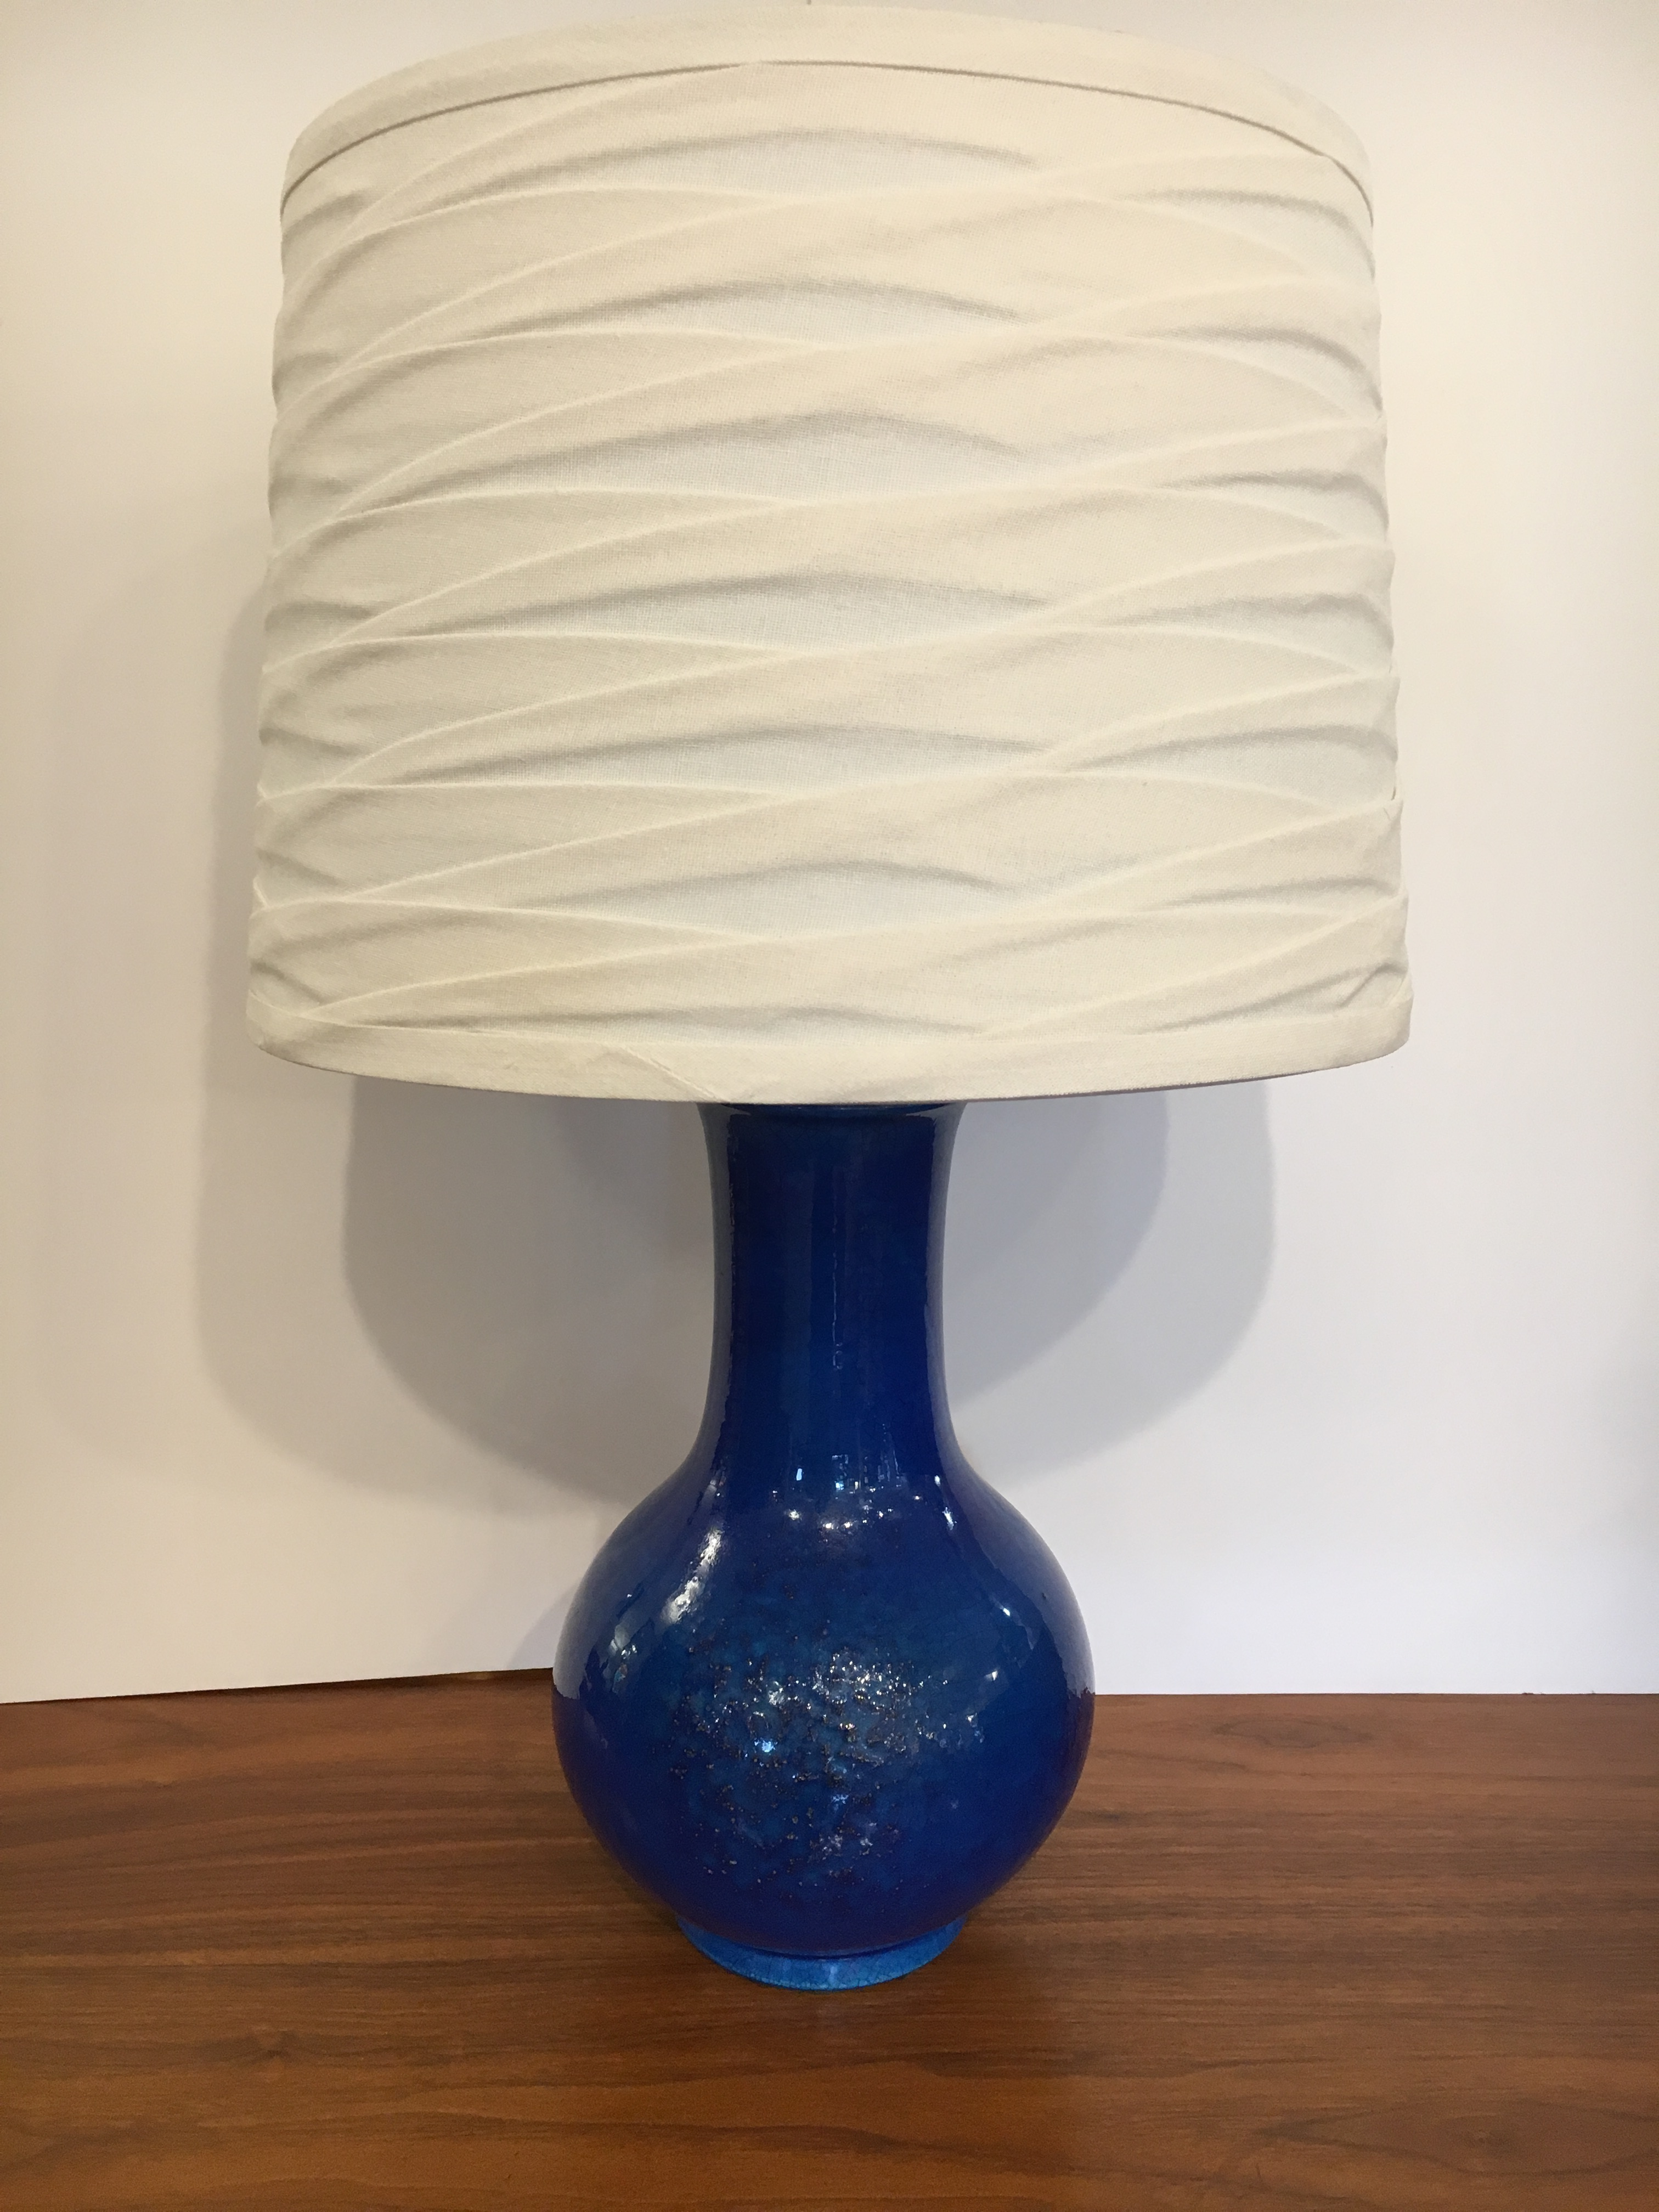 c.1970s Pottery Table Lamp with Blue Glaze by Pol Chambost, France